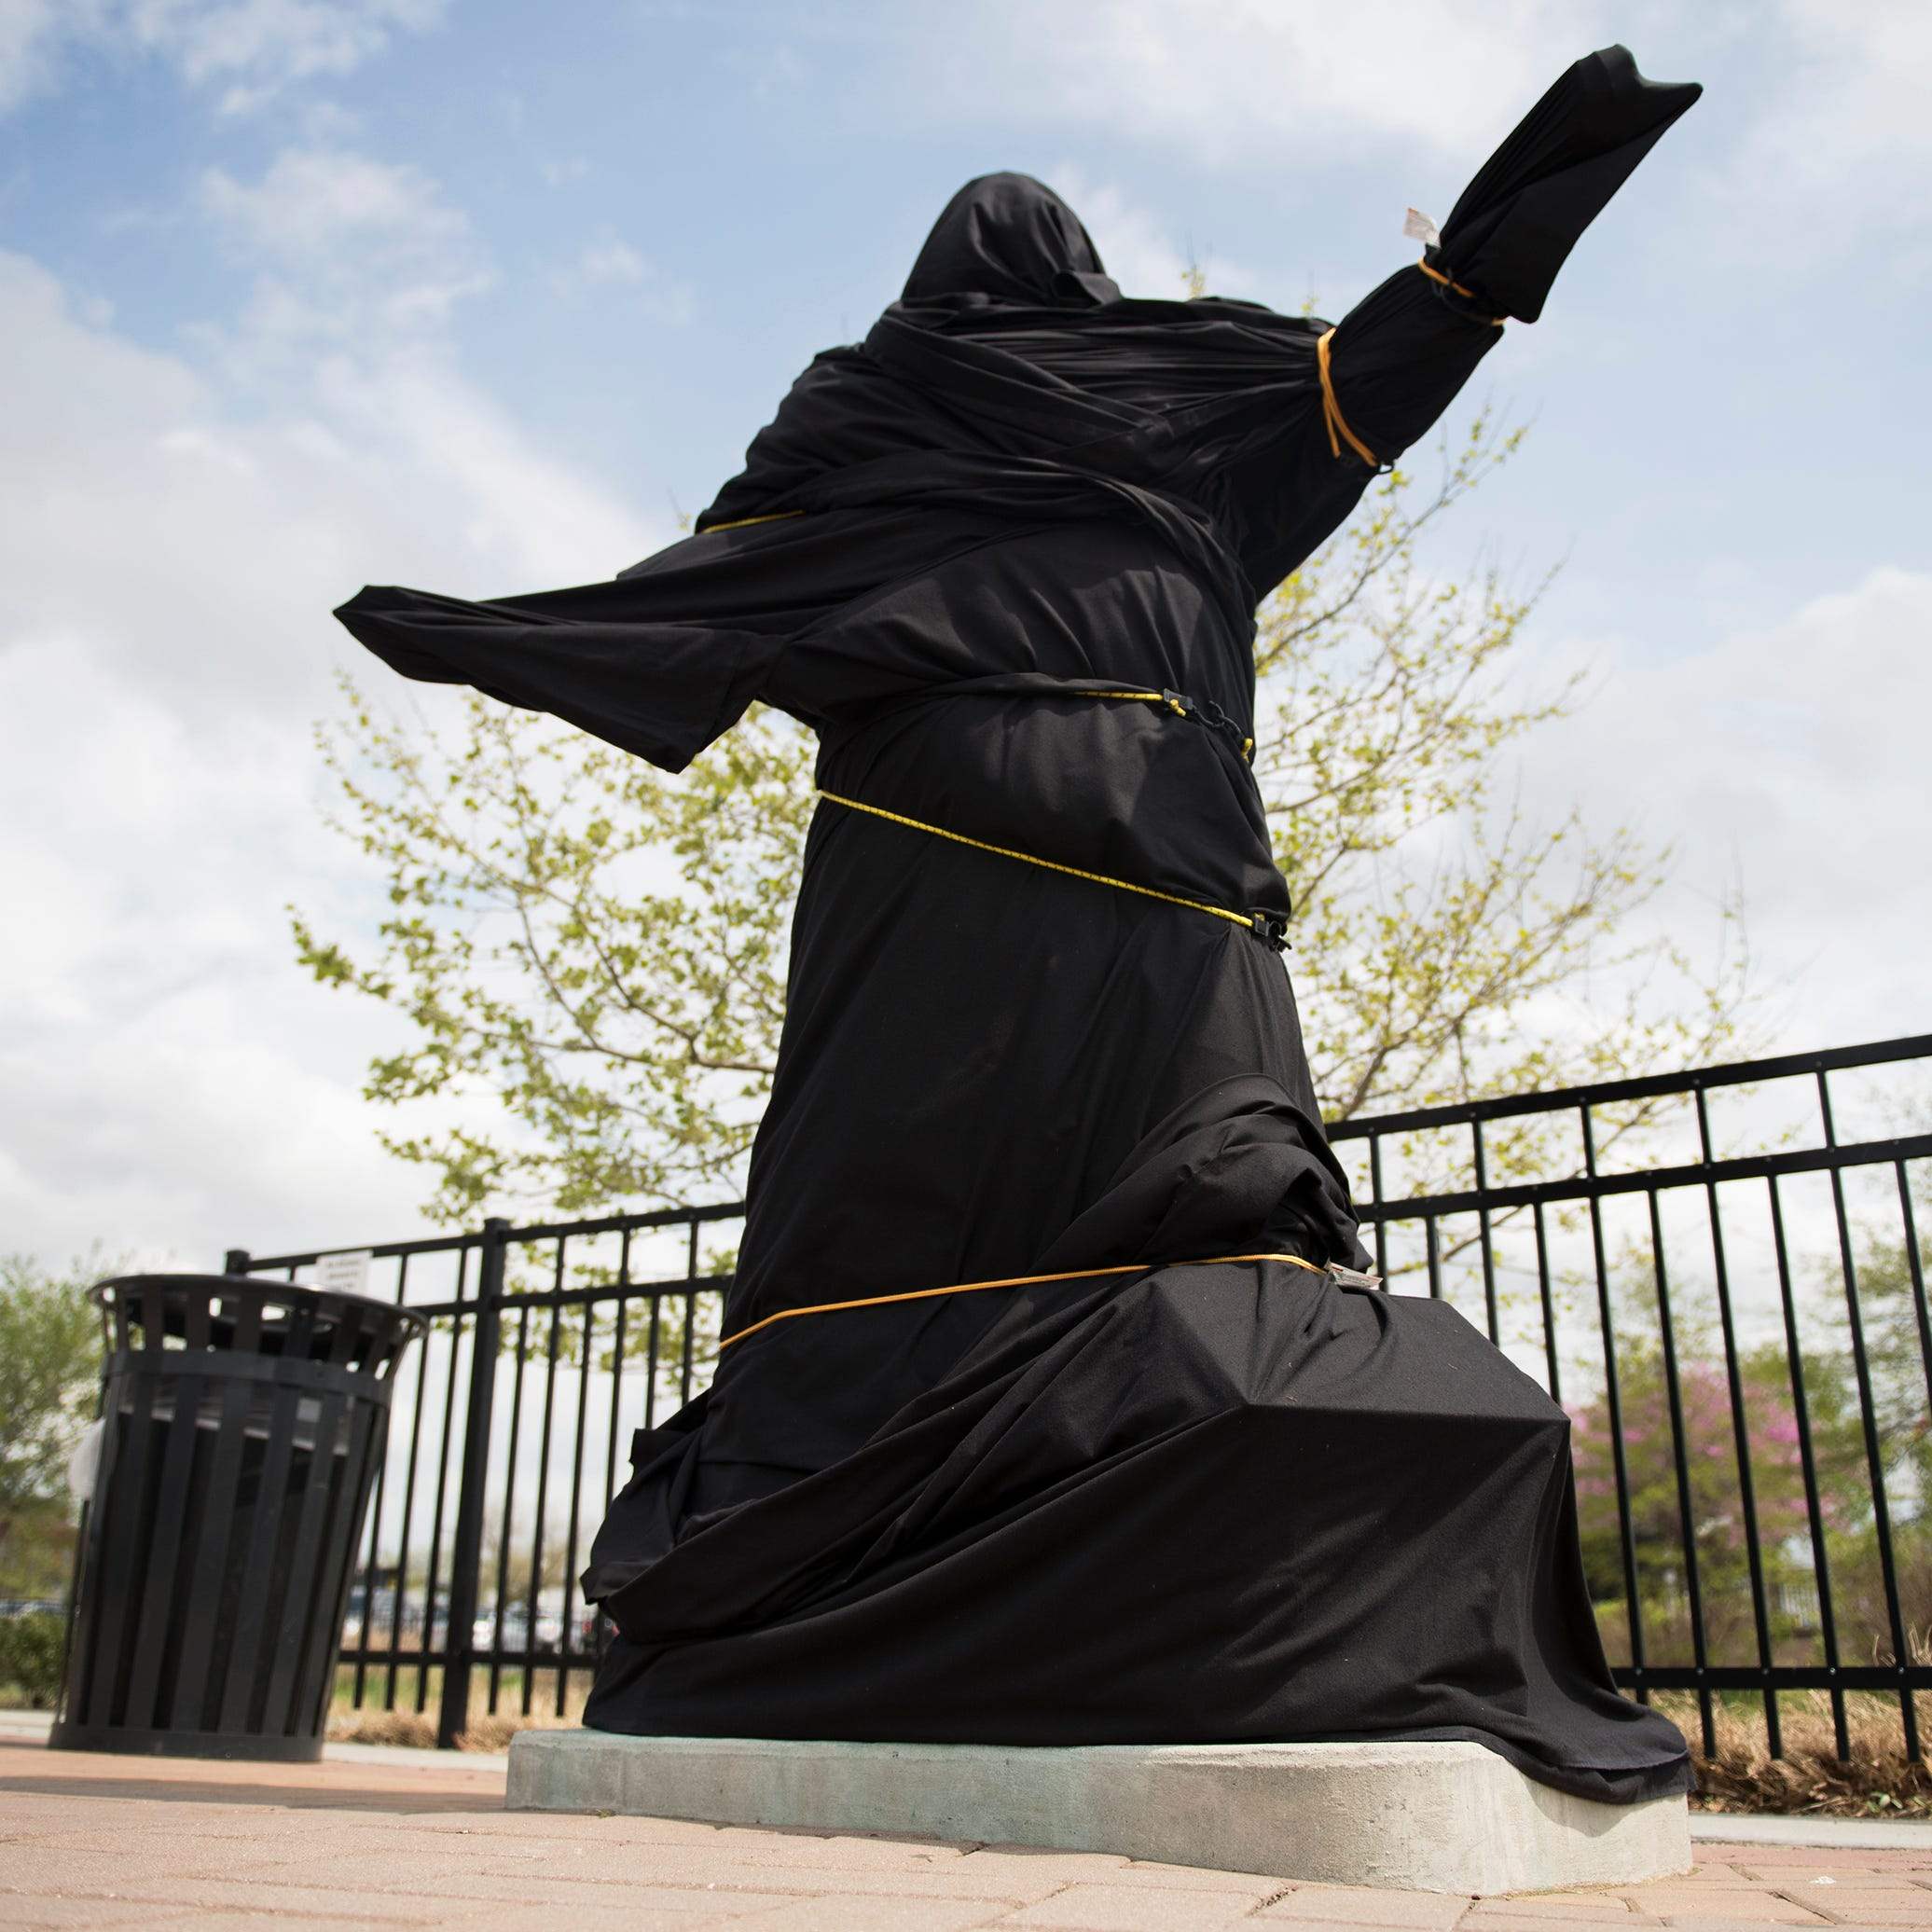 Wildwood veterans' group launches petition for Kate Smith statue